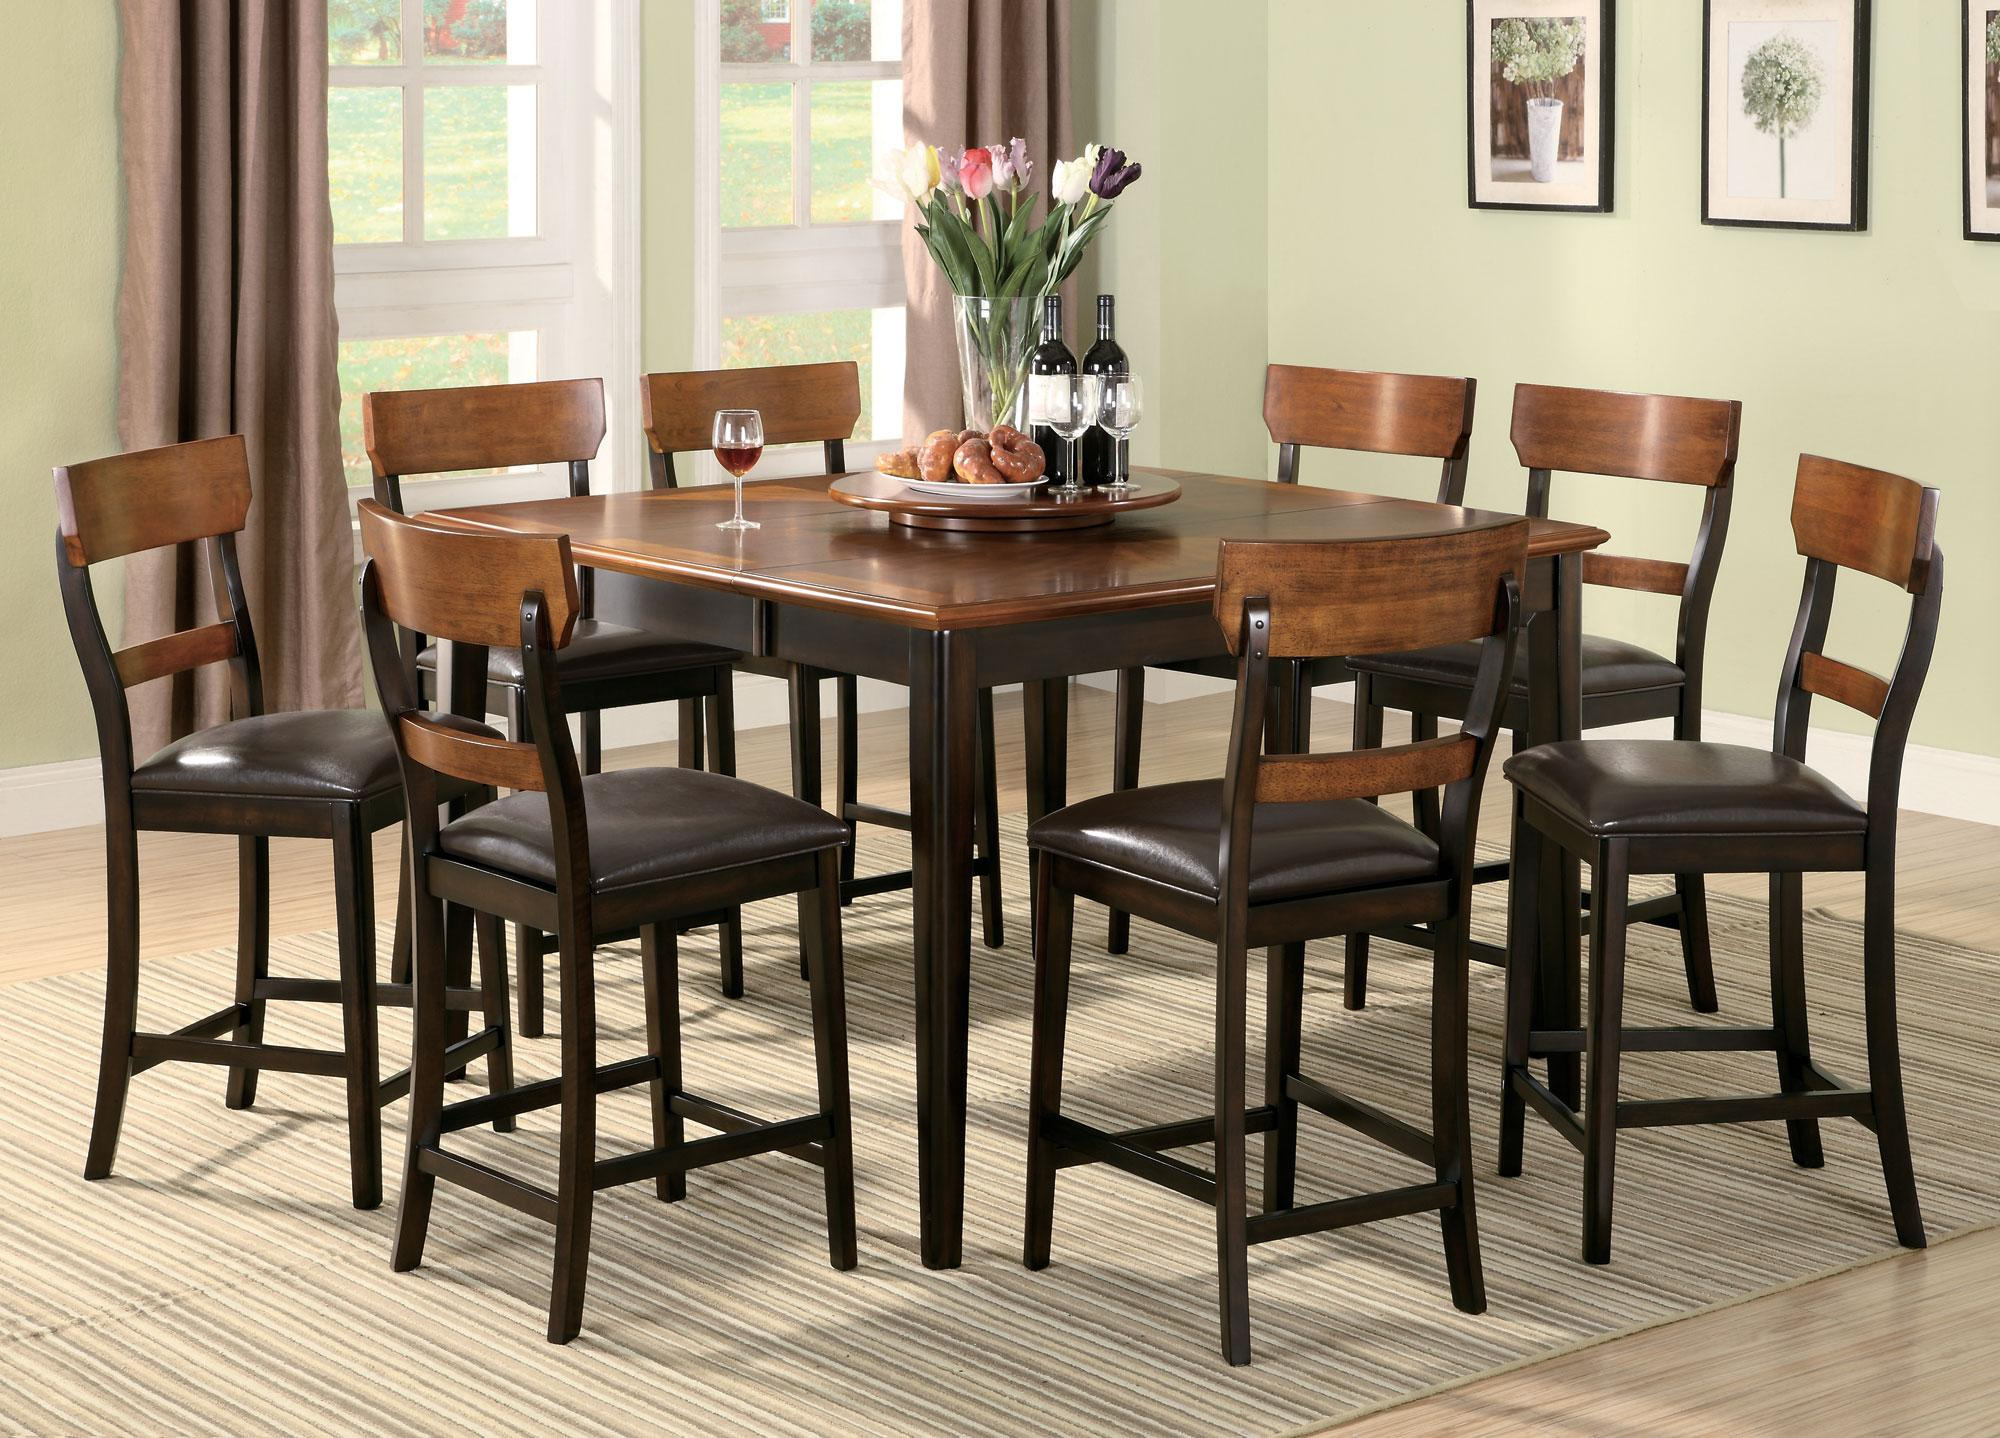 Coaster Franklin 8 Piece Counter Height Dining Set - Item Number: 102198+8x102199